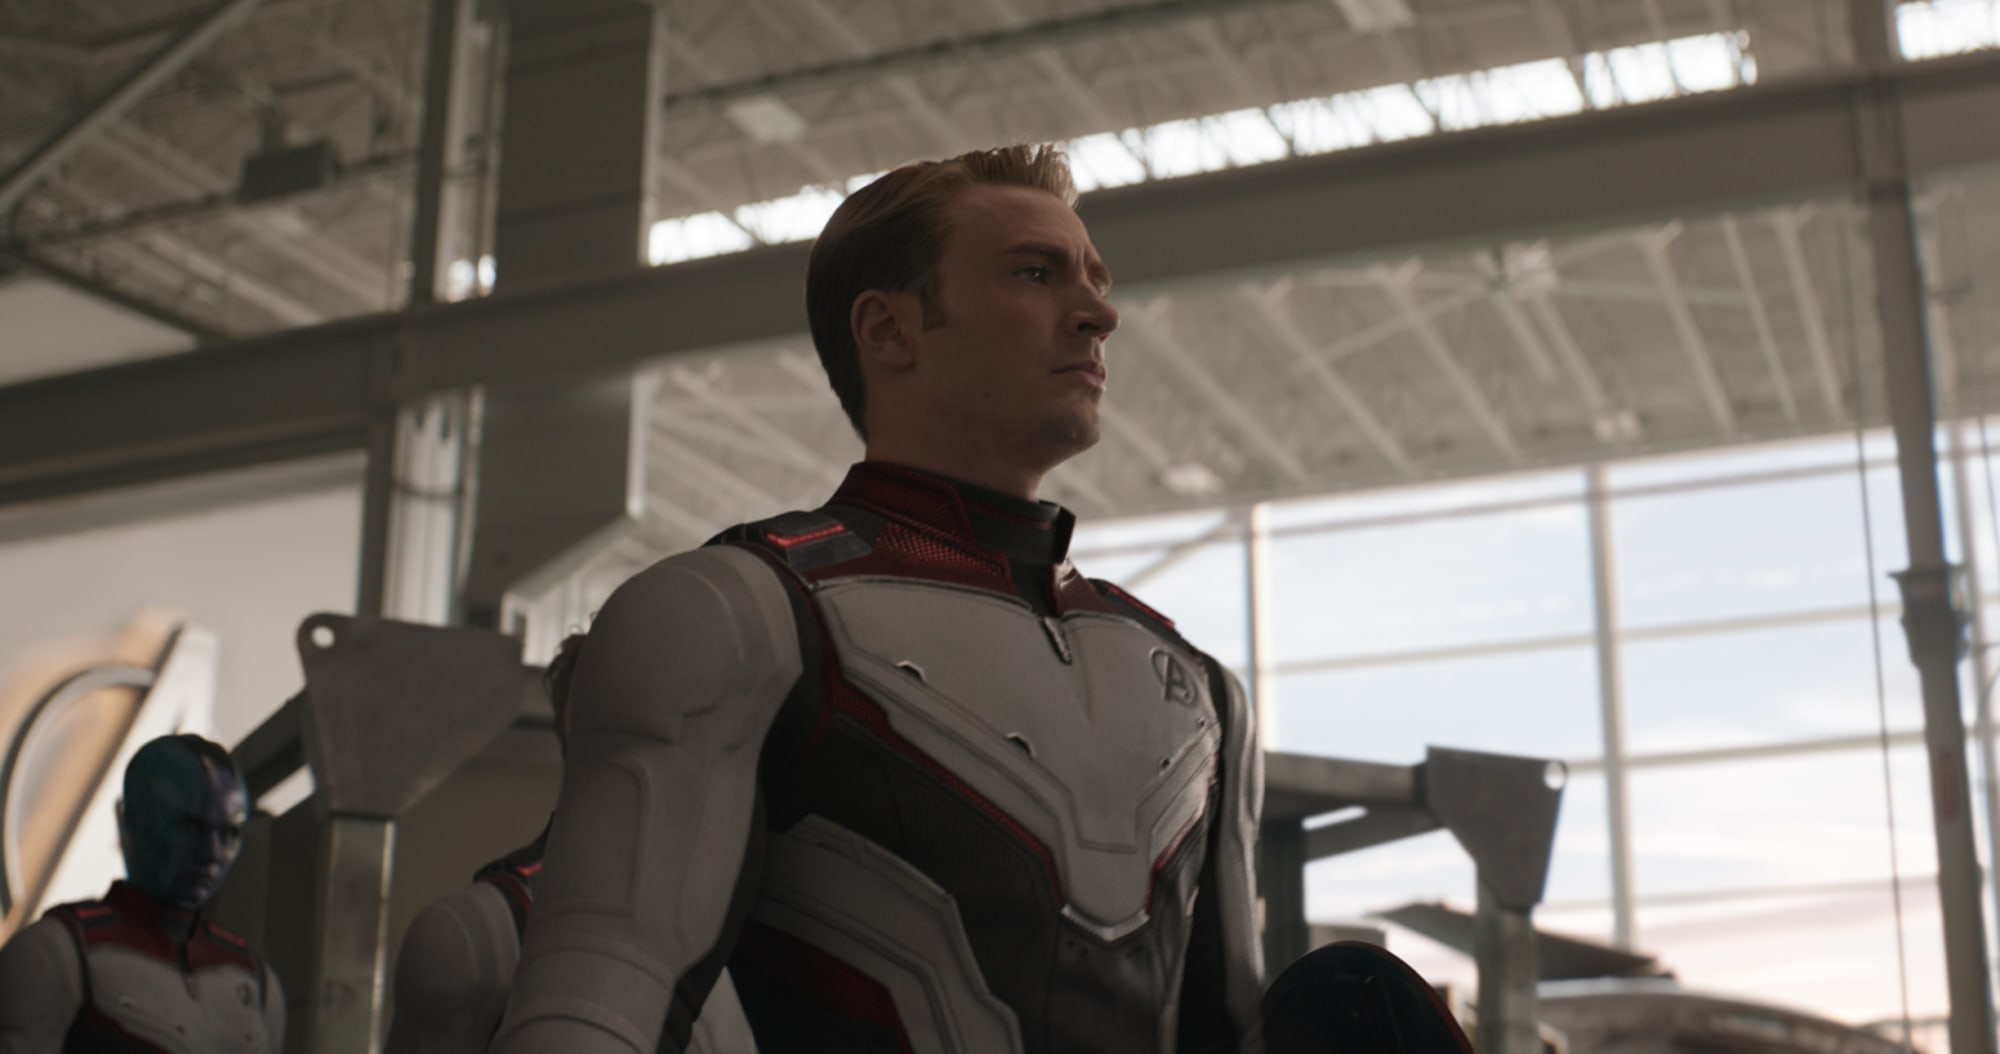 It's time to tell the story of what Captain America did in the past